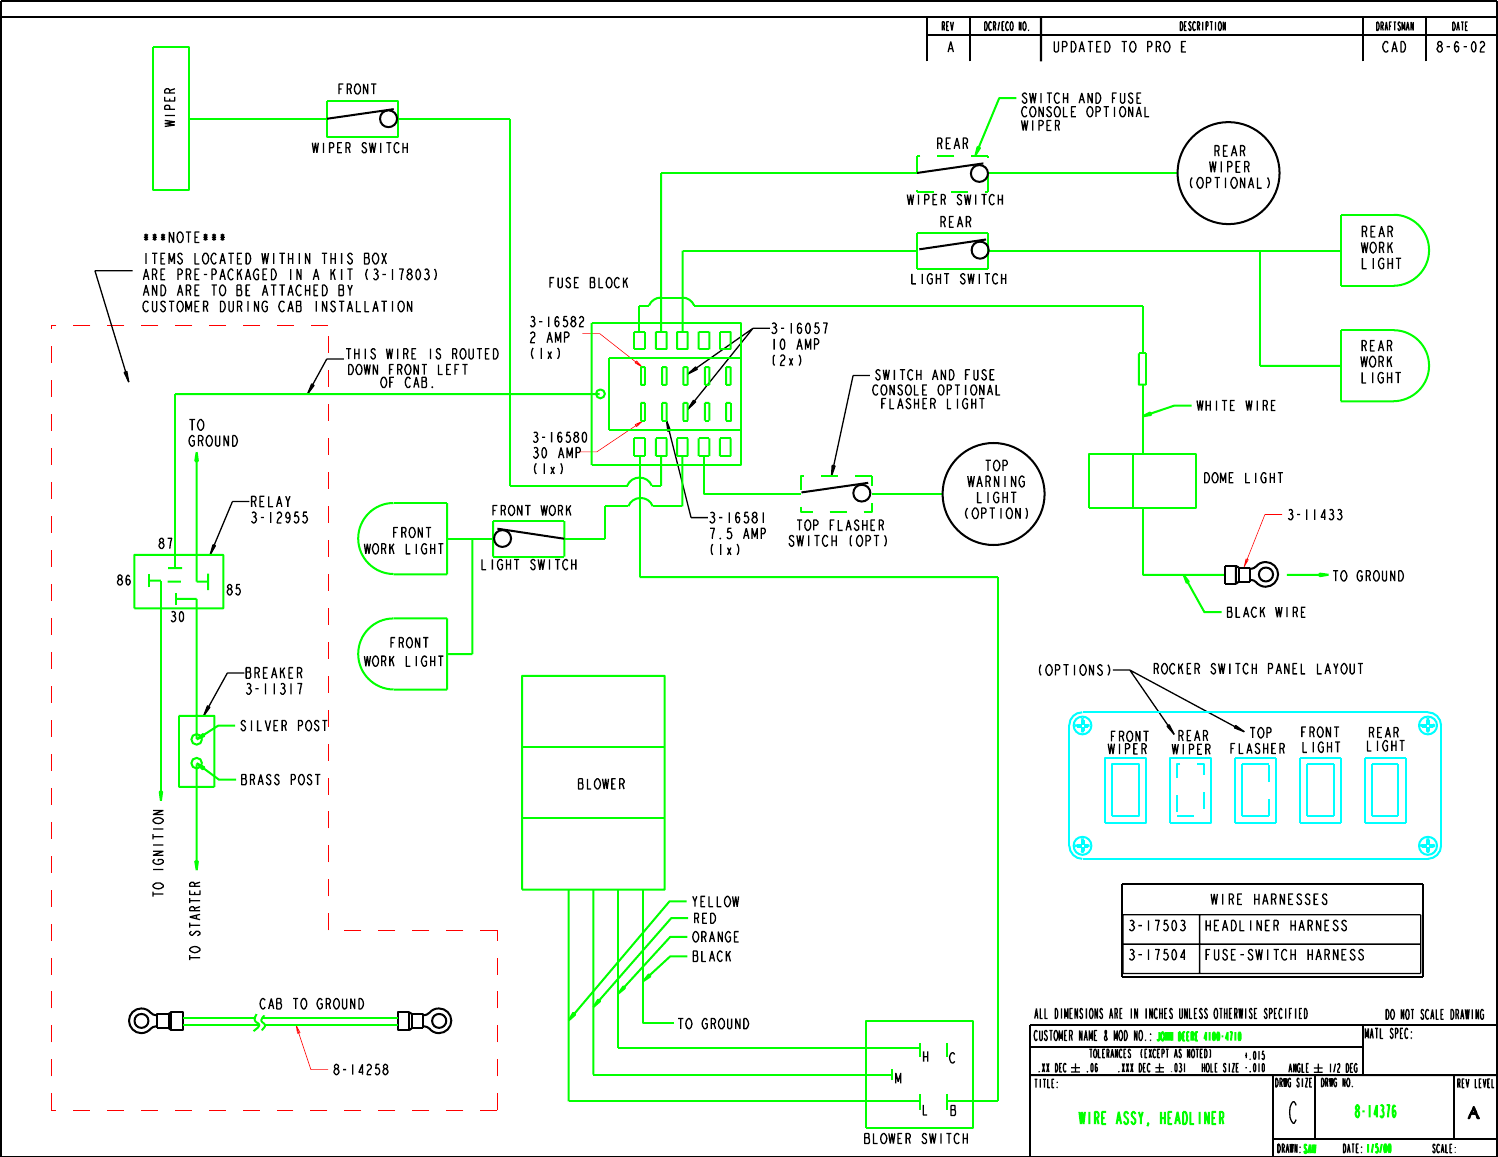 John Deere Products And Services Cab A 11170 Users Manual Jd 4100 185 Wiring Schematic Page 26